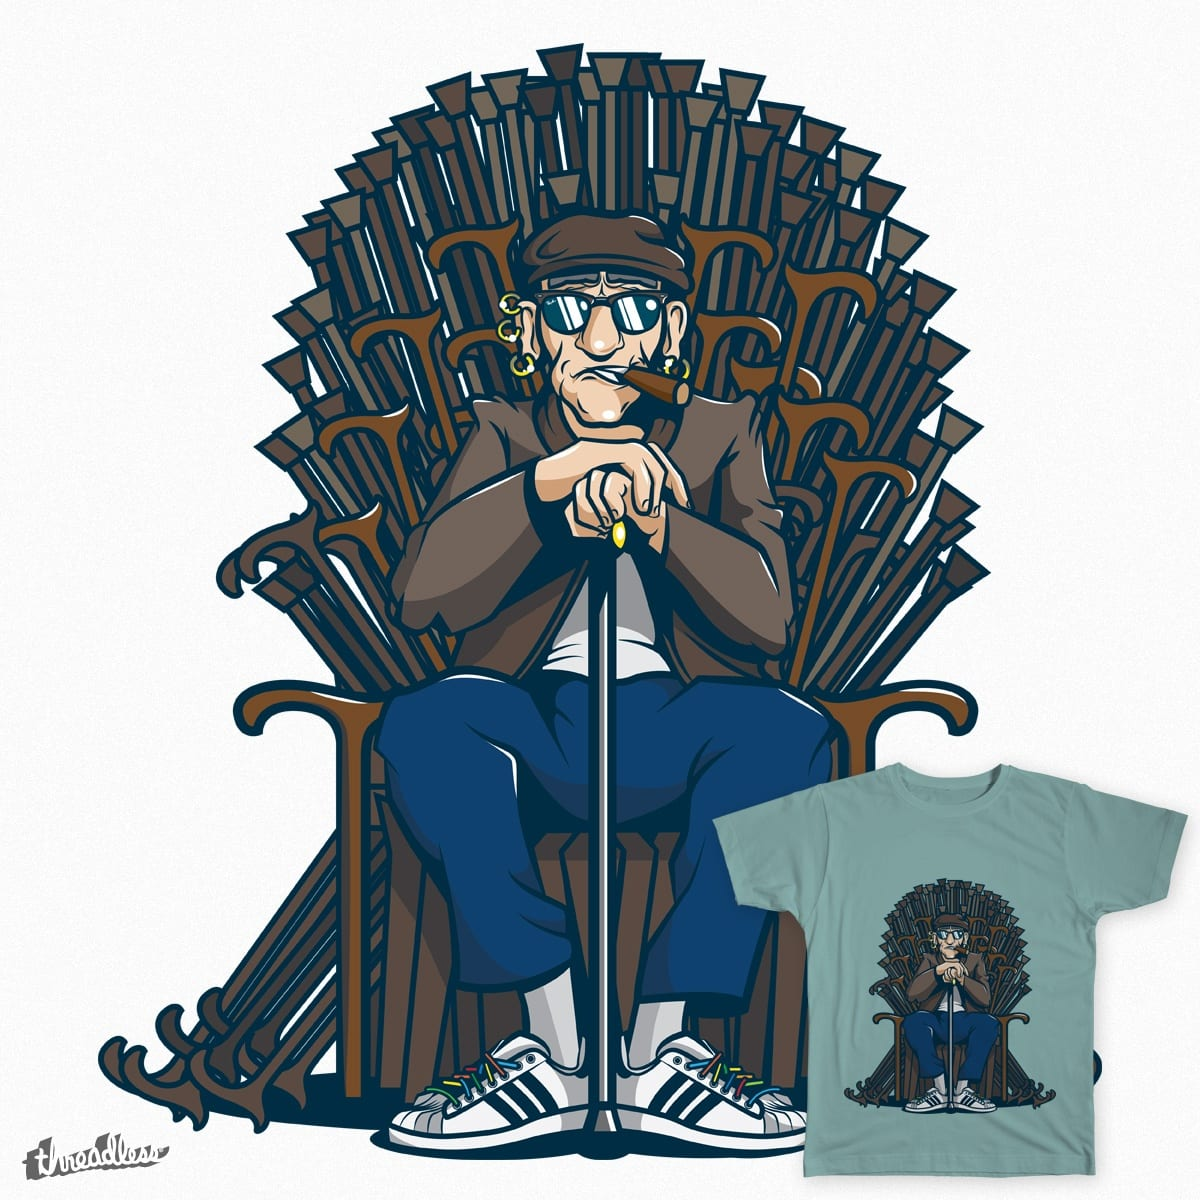 The Cane Throne by Theriessa on Threadless